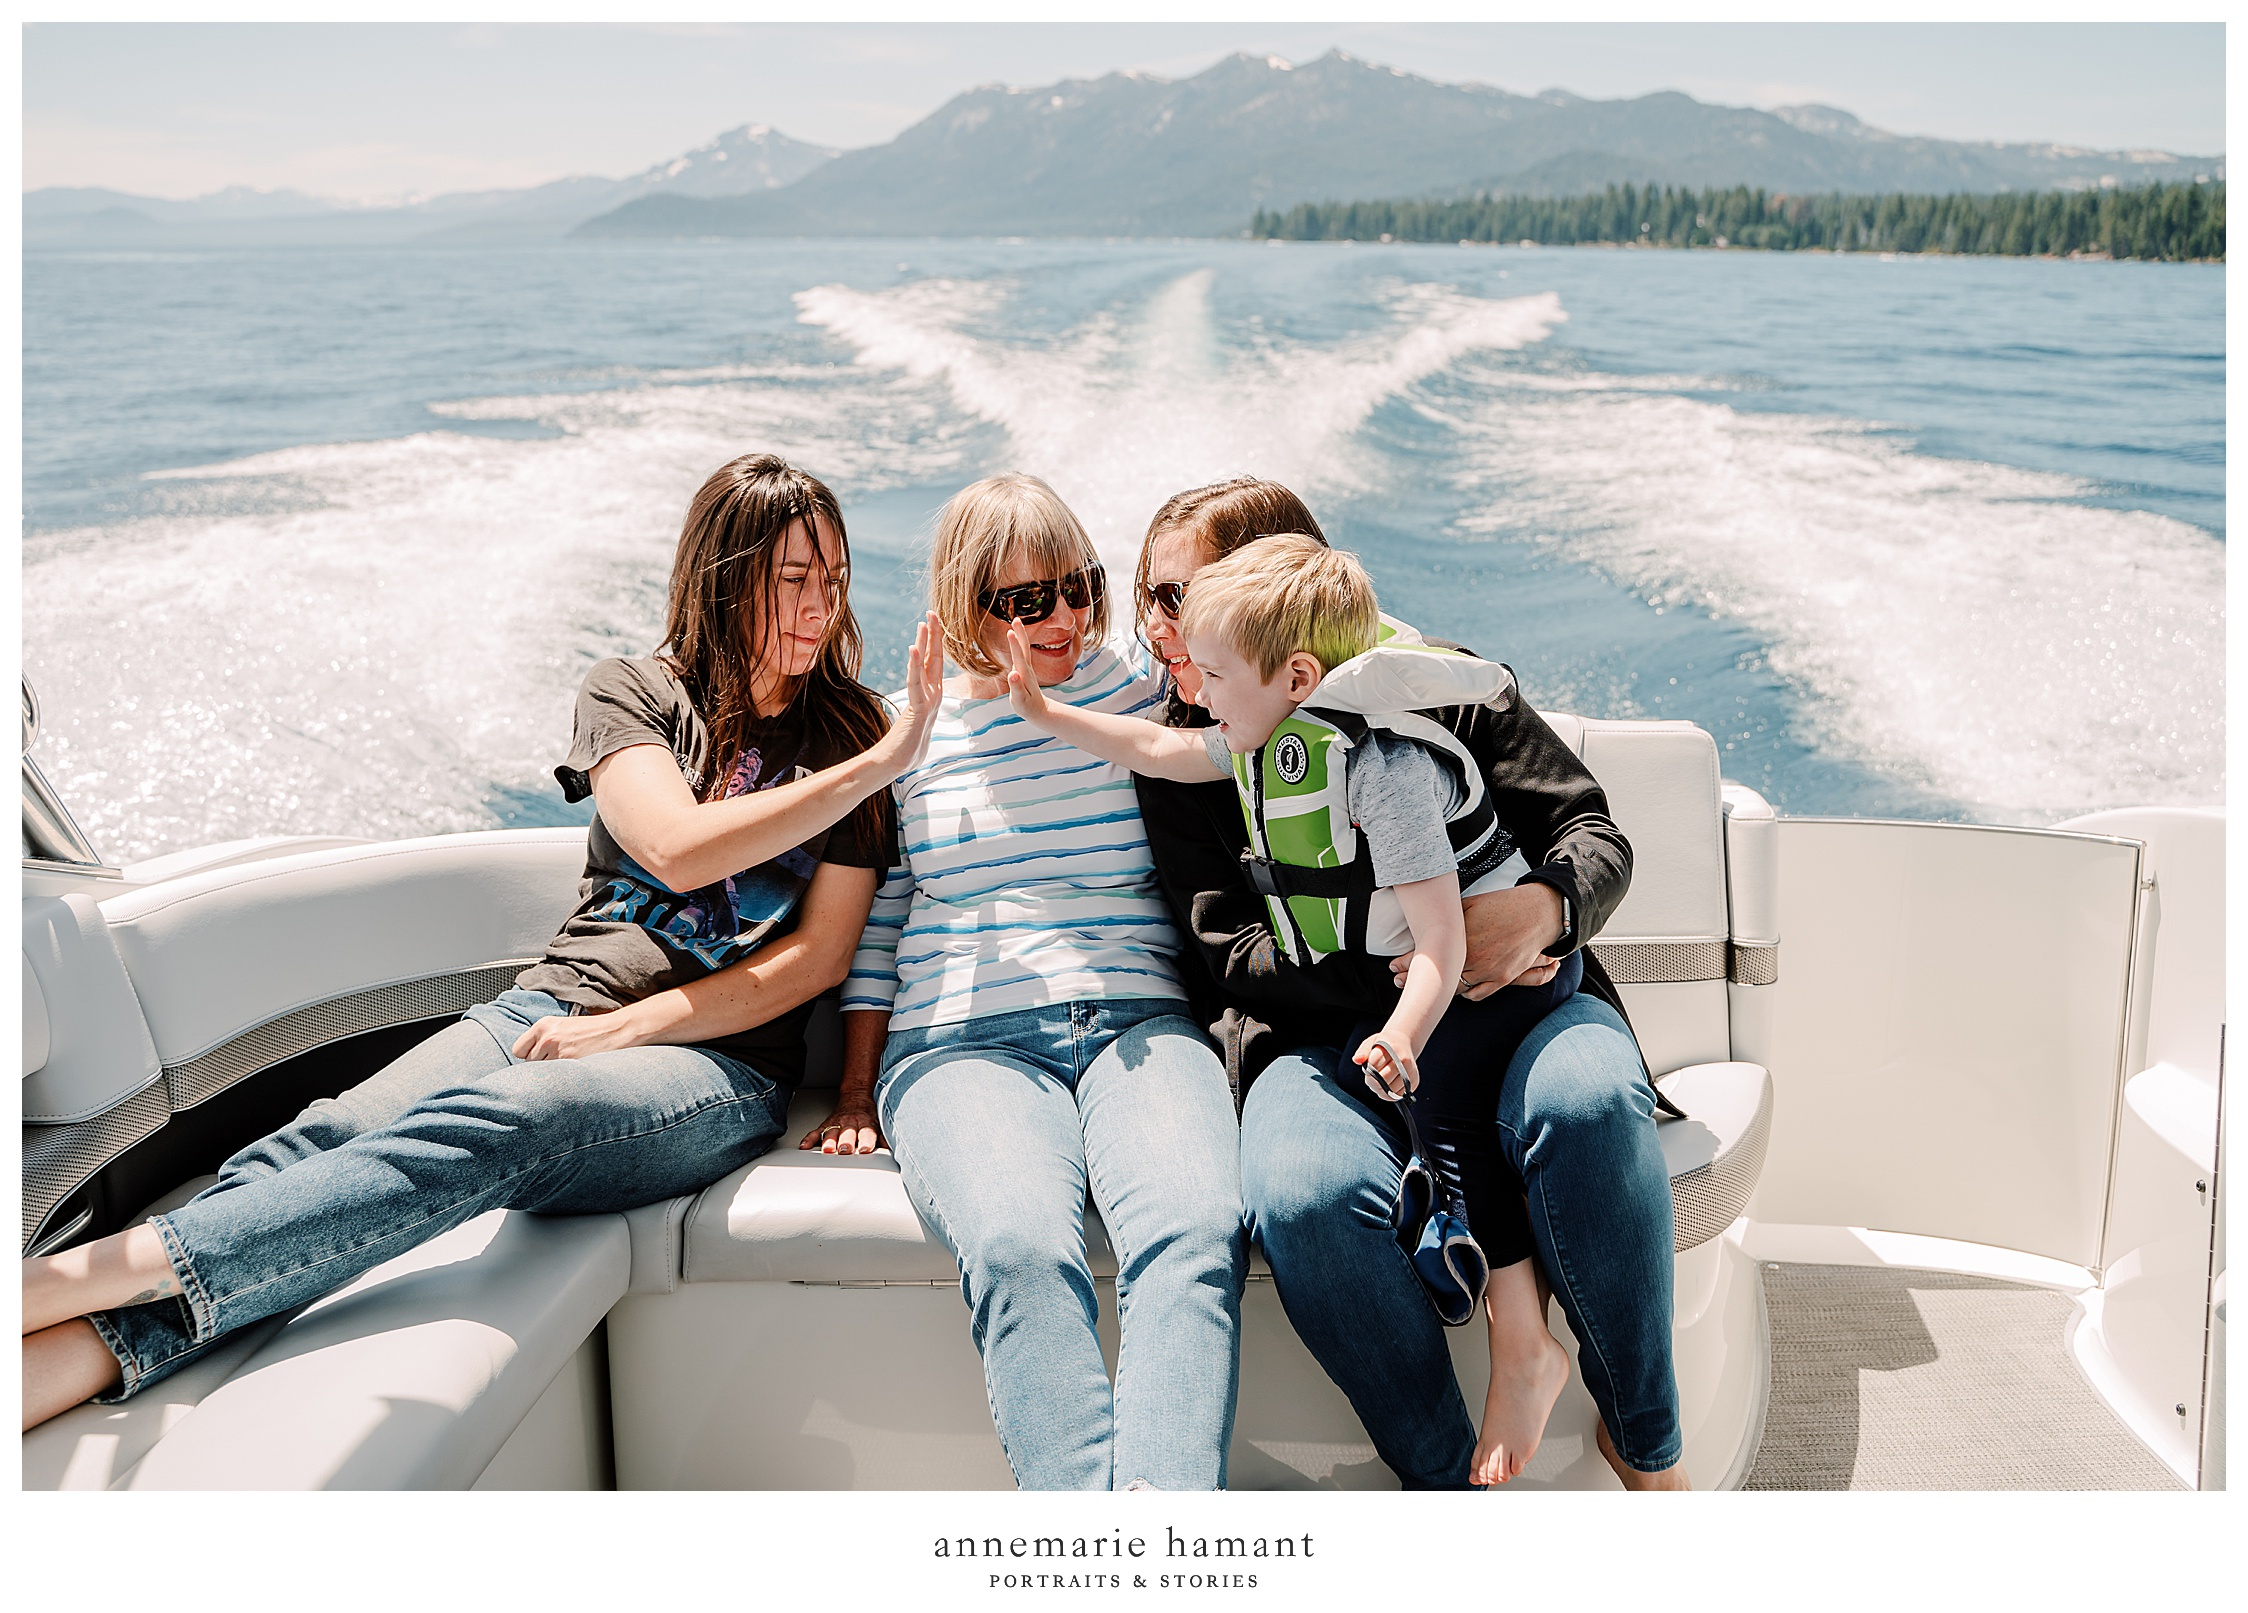 Documentary family photography on Lake Tahoe captures your family vacation and lake life. AnneMarie Hamant is an award winning photographer who travels to document her client's most important memories.